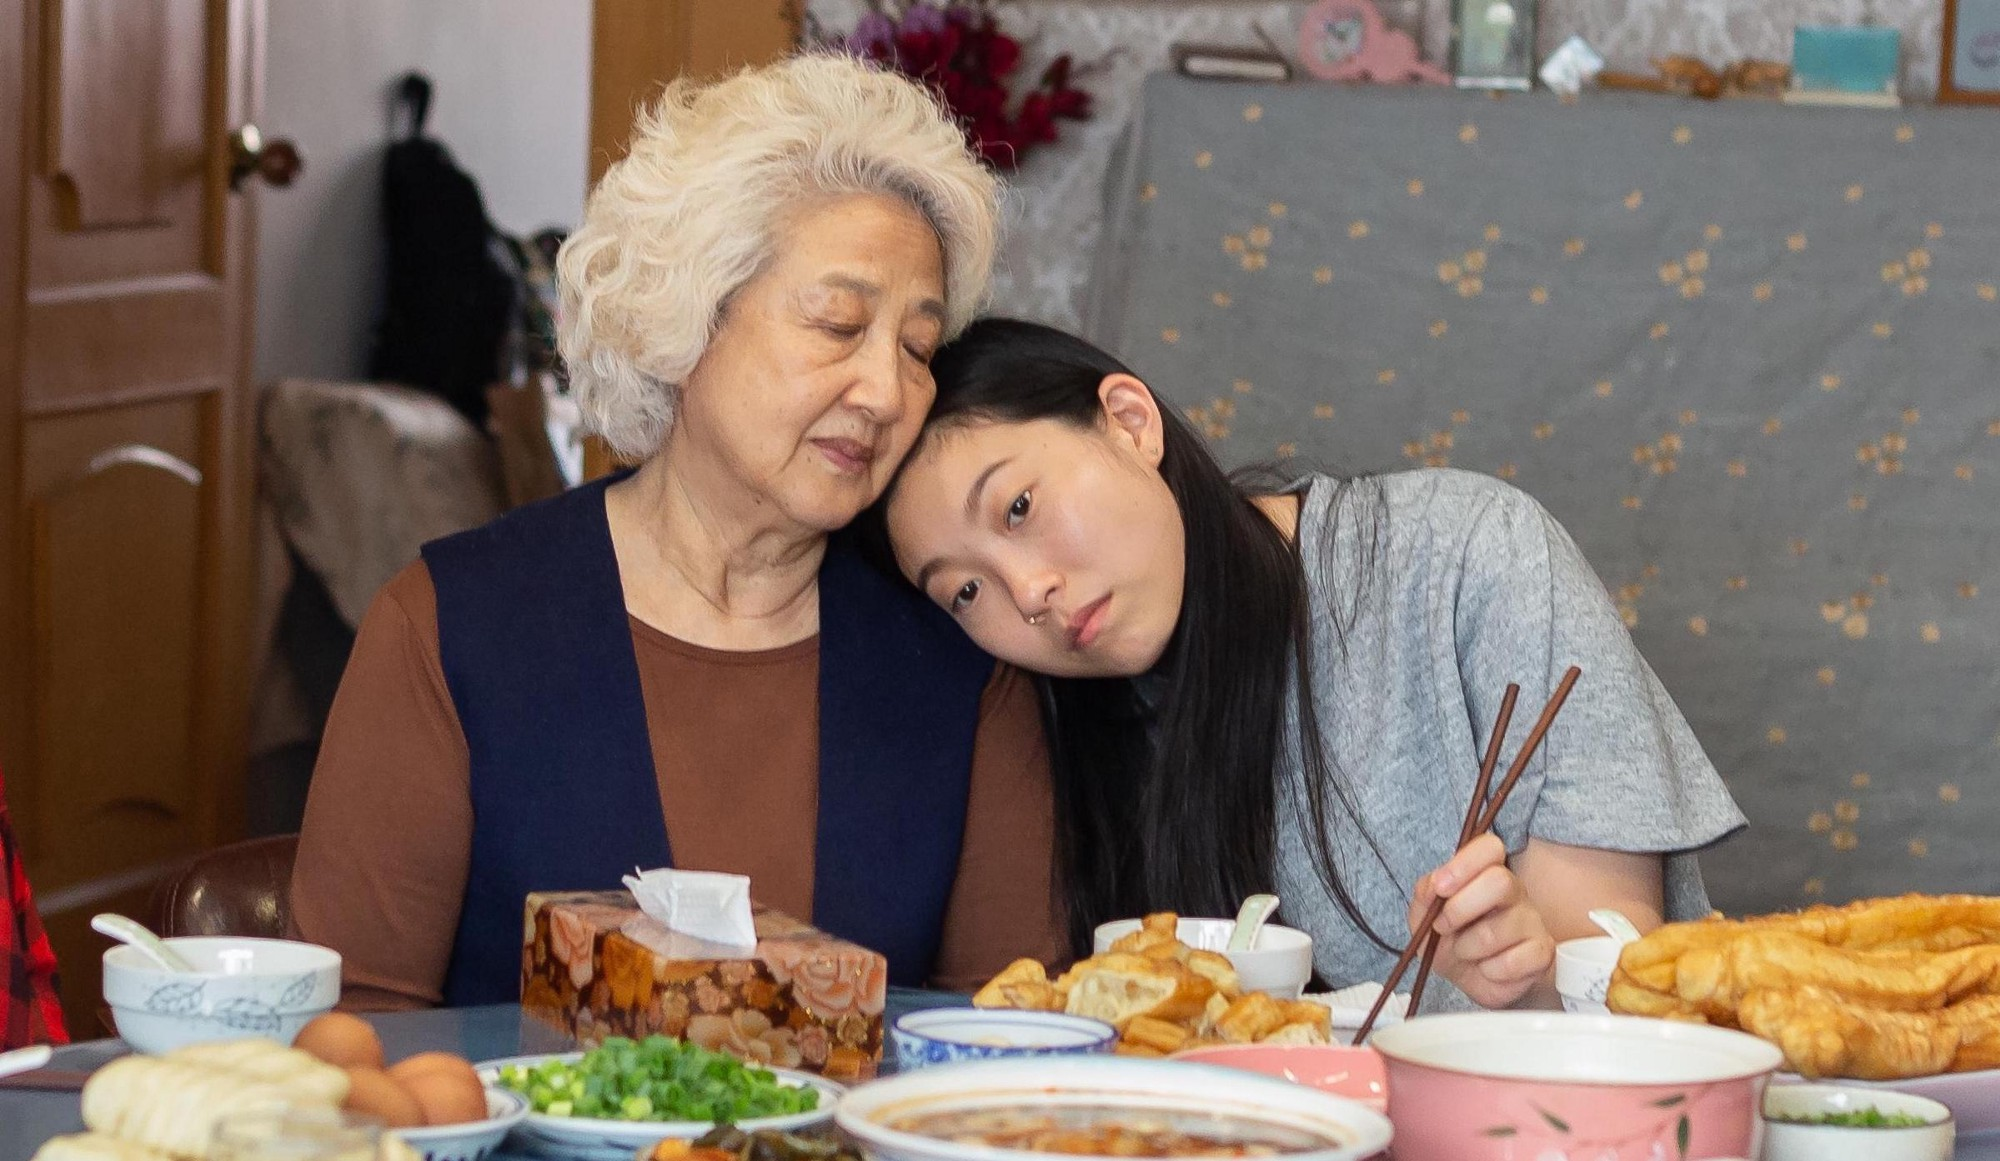 A young Chinese American woman rests her head against the shoulder of an elderly Chinese woman